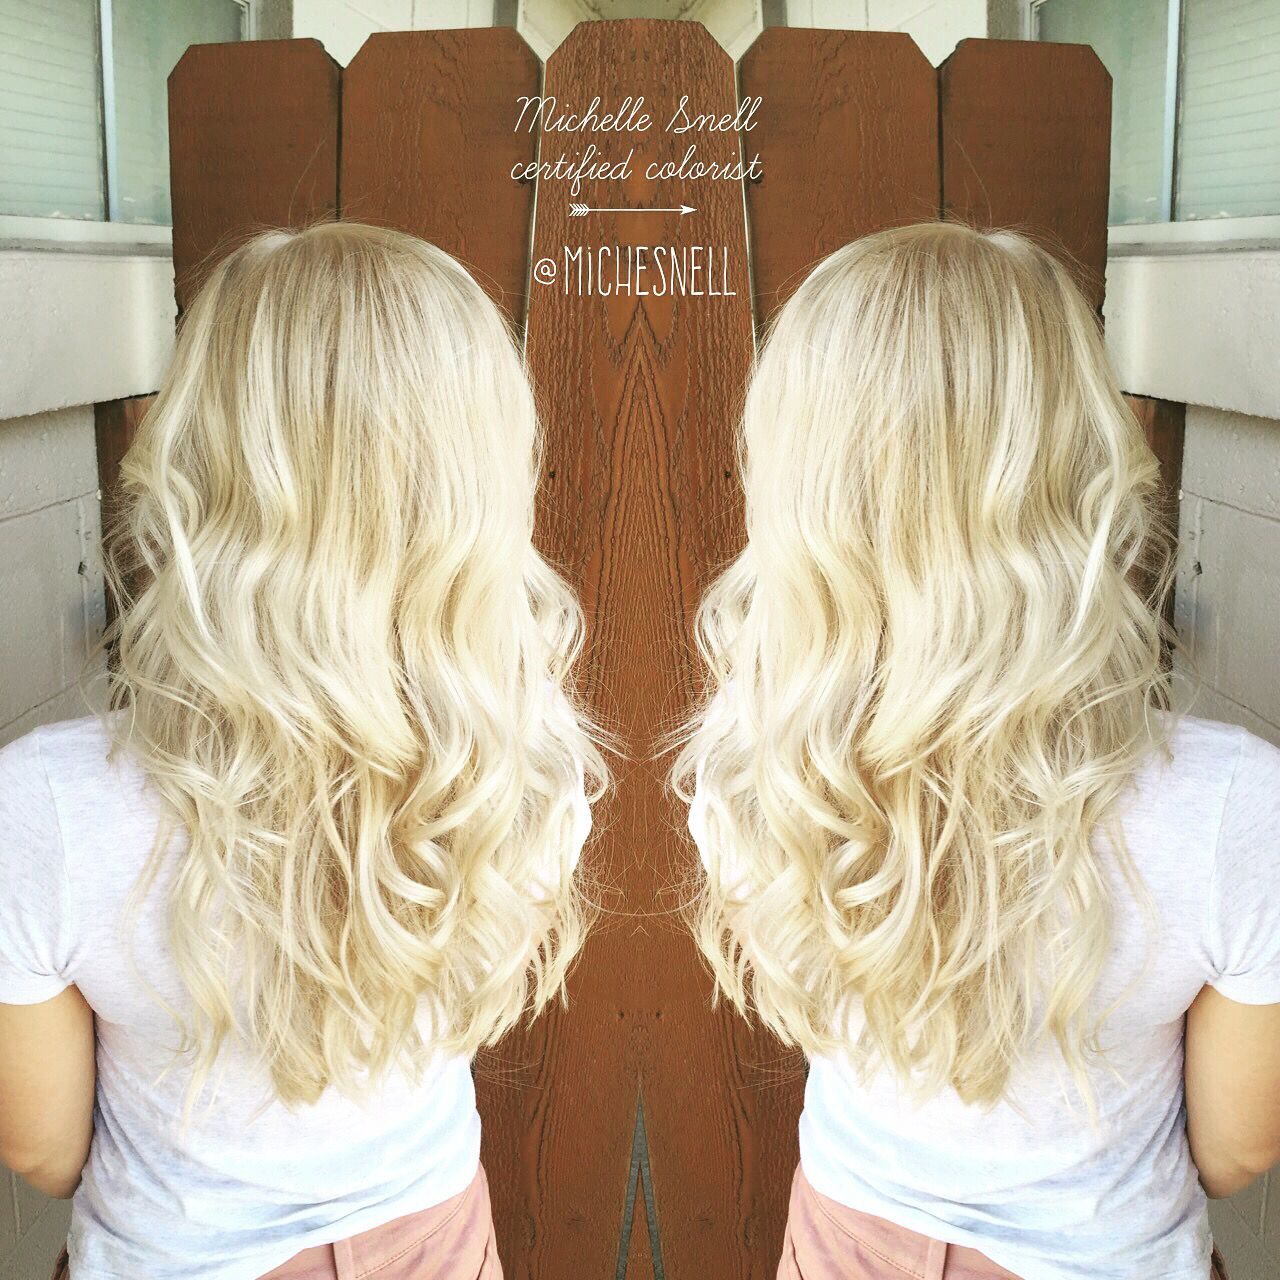 styles baby trend platinum hairstyle hair and marvelous golden for chart blonde color beach inspired curly